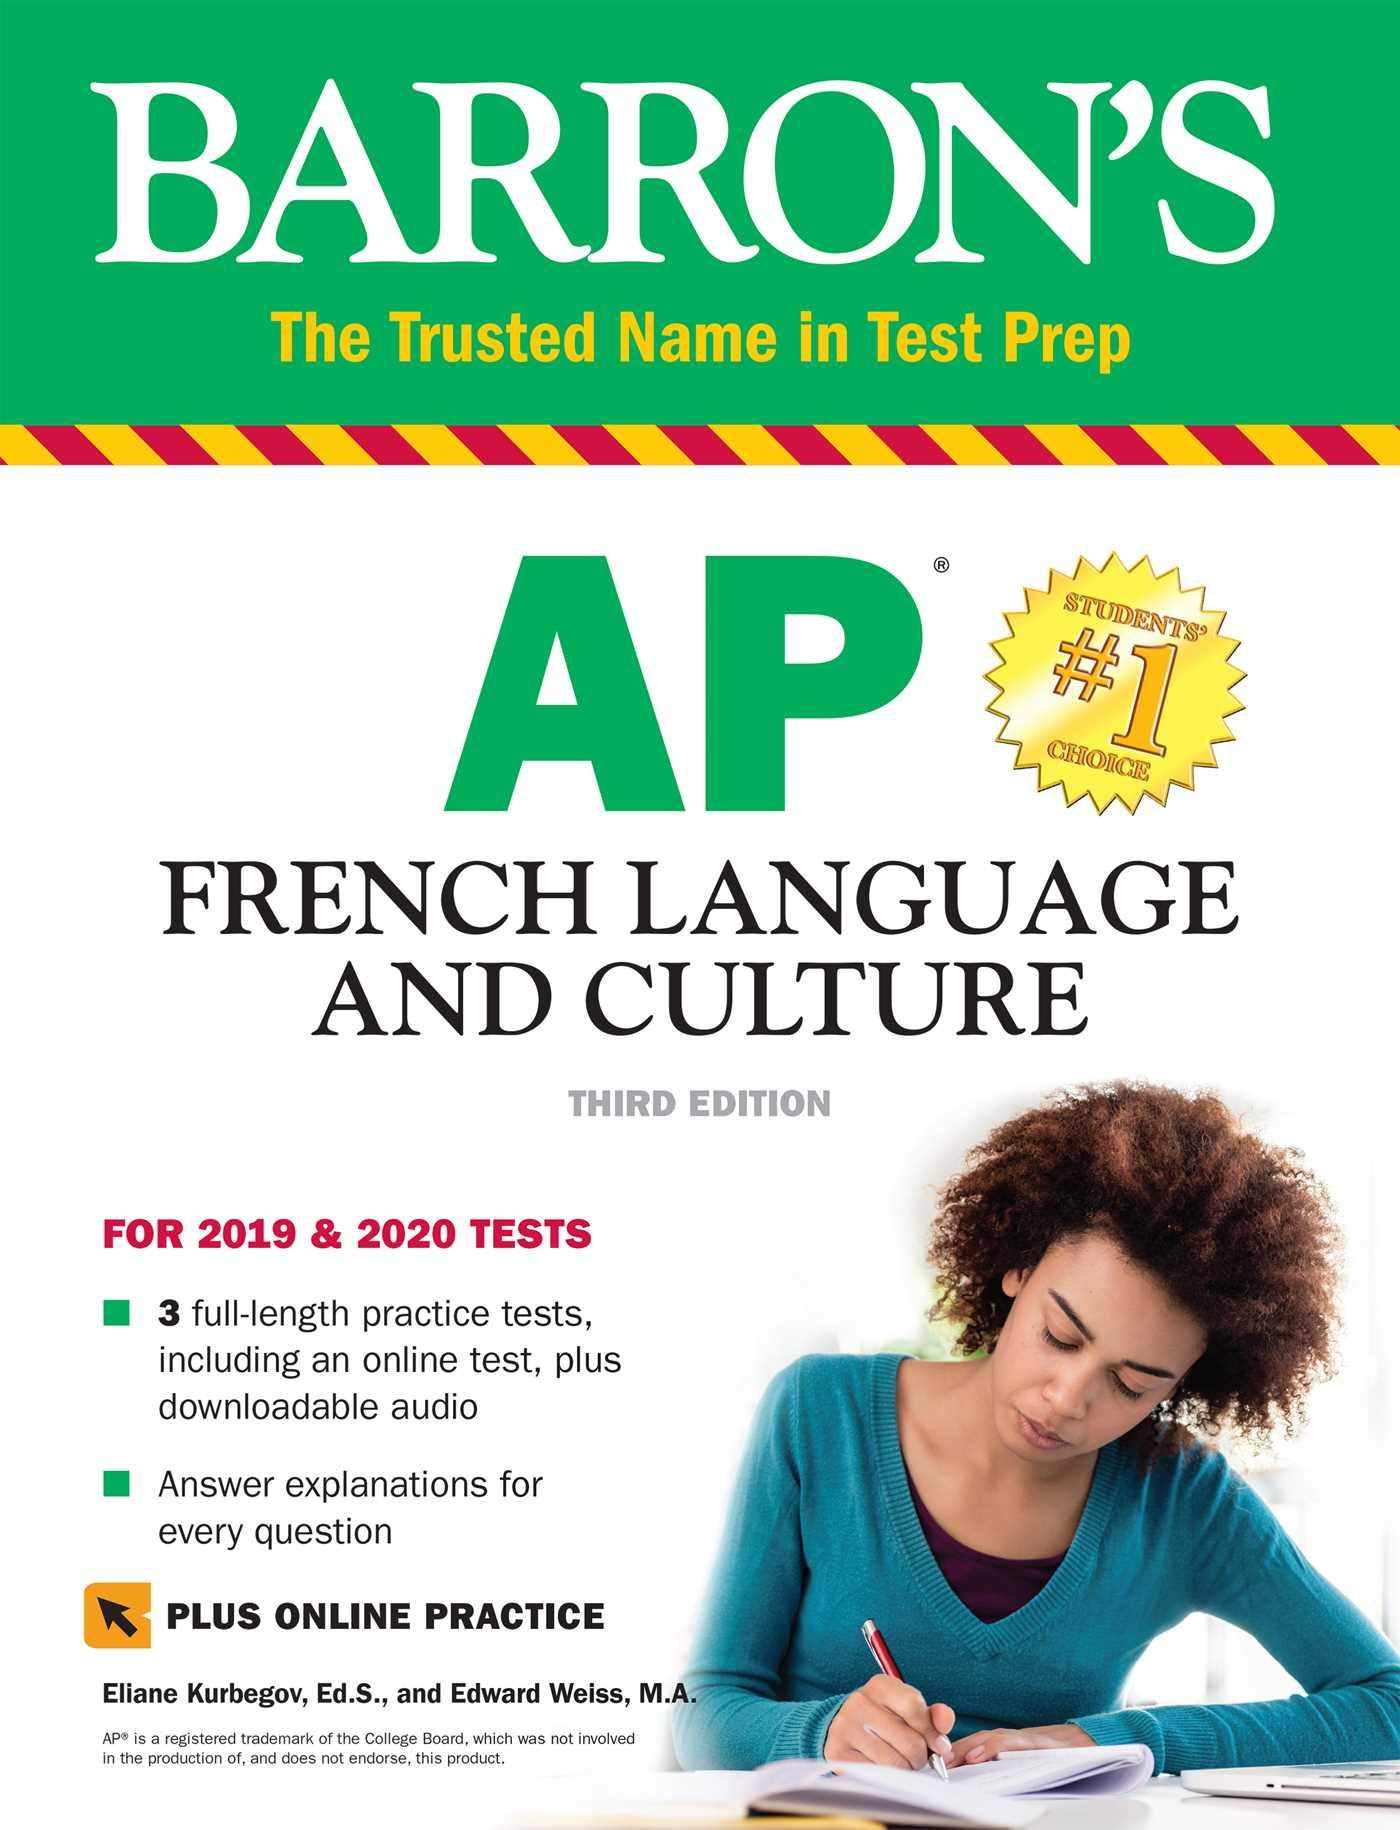 Image OfAP French Language And Culture With Online Test & Downloadable Audio (Barron's Test Prep)